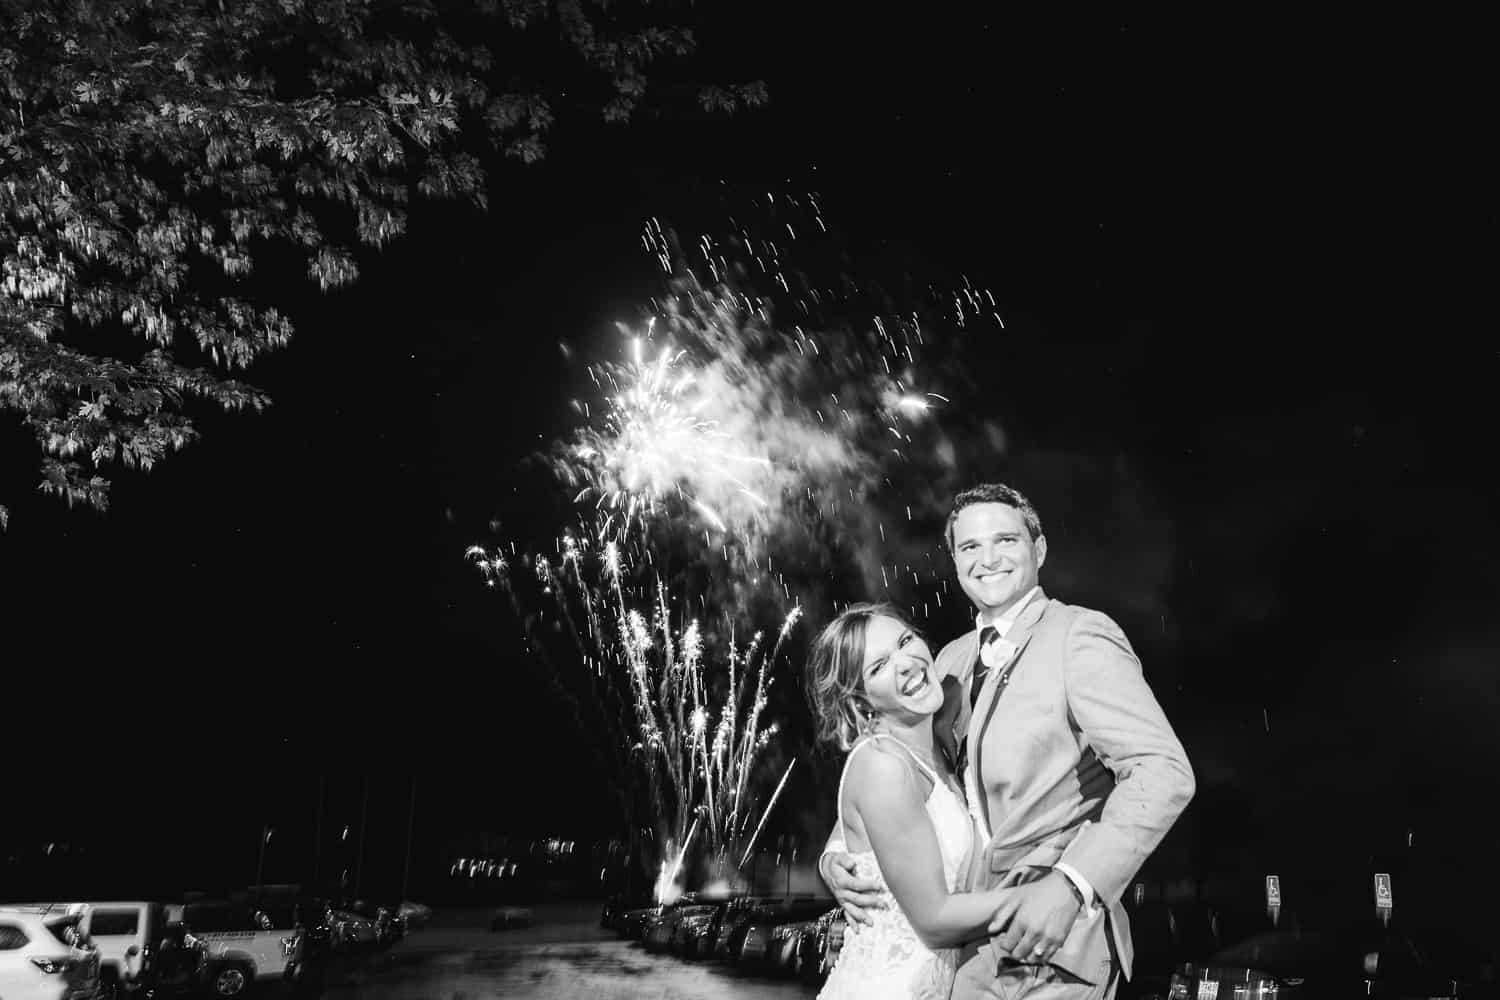 Wedding day fireworks in MIssouri